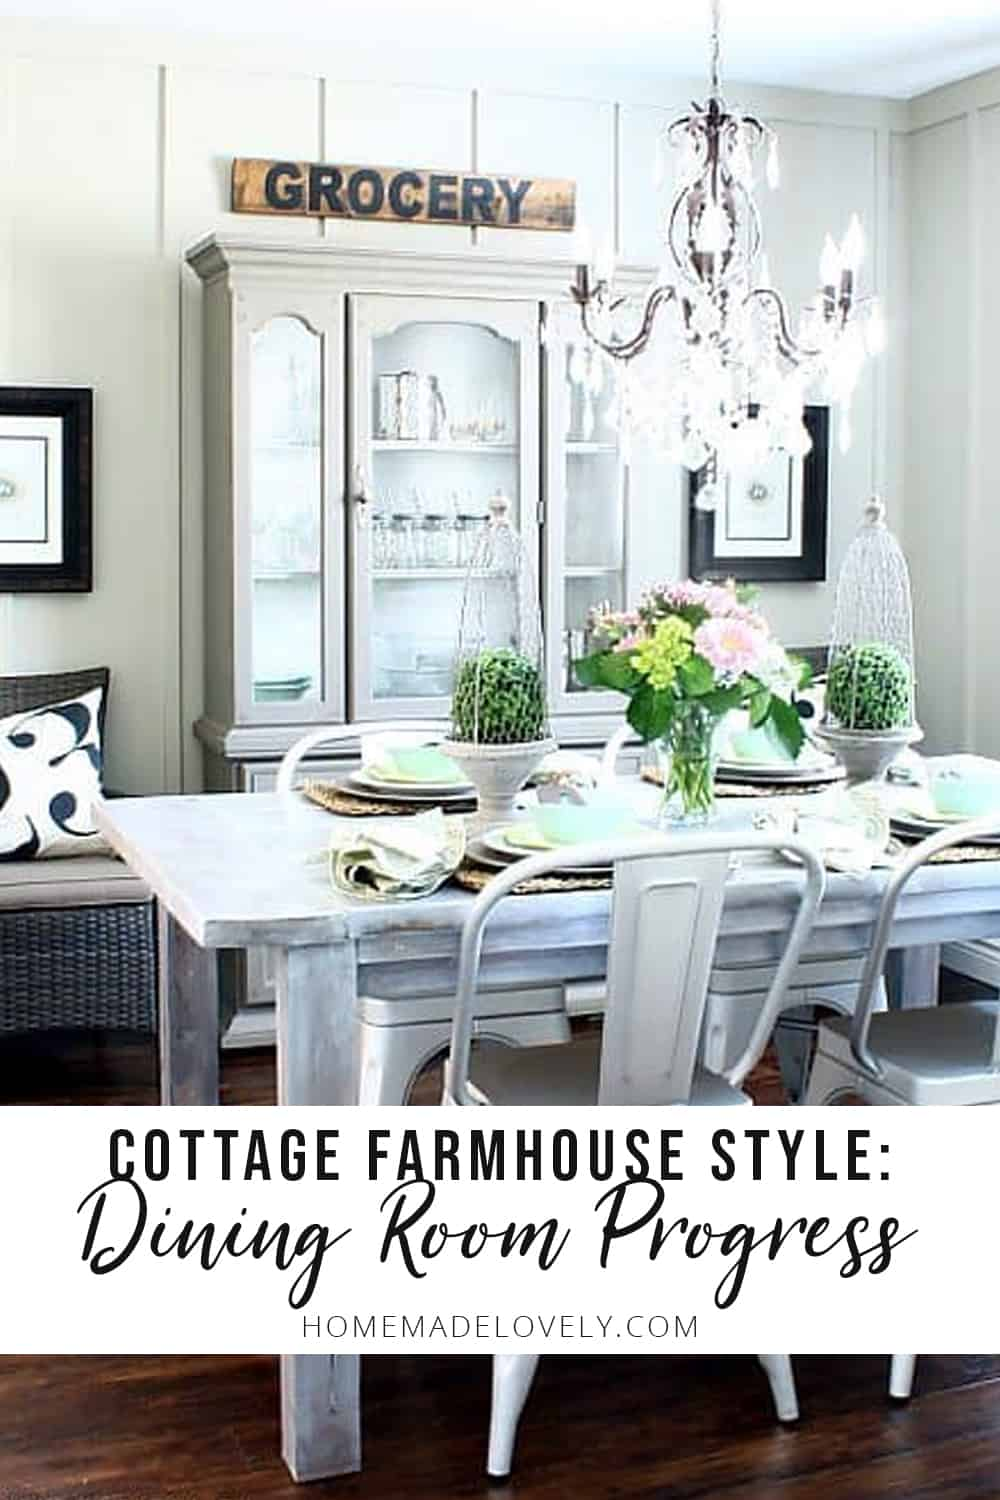 Cottage farmhouse style dining room progress